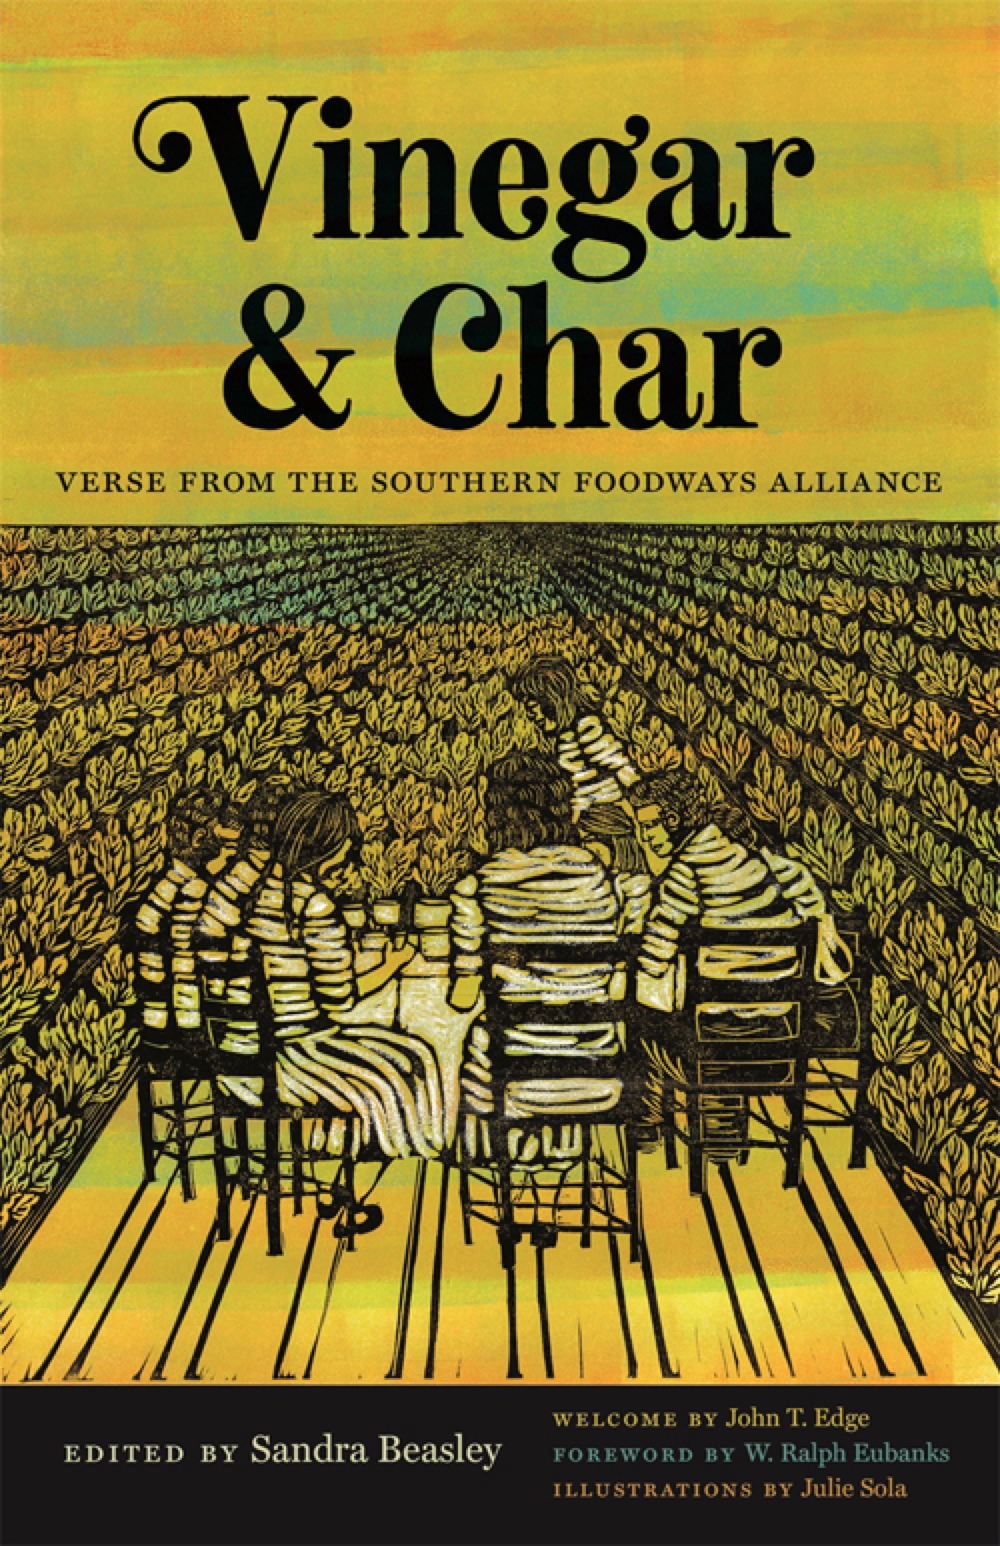 Vinegar and Char: Verse from the Southern Foodways Alliance